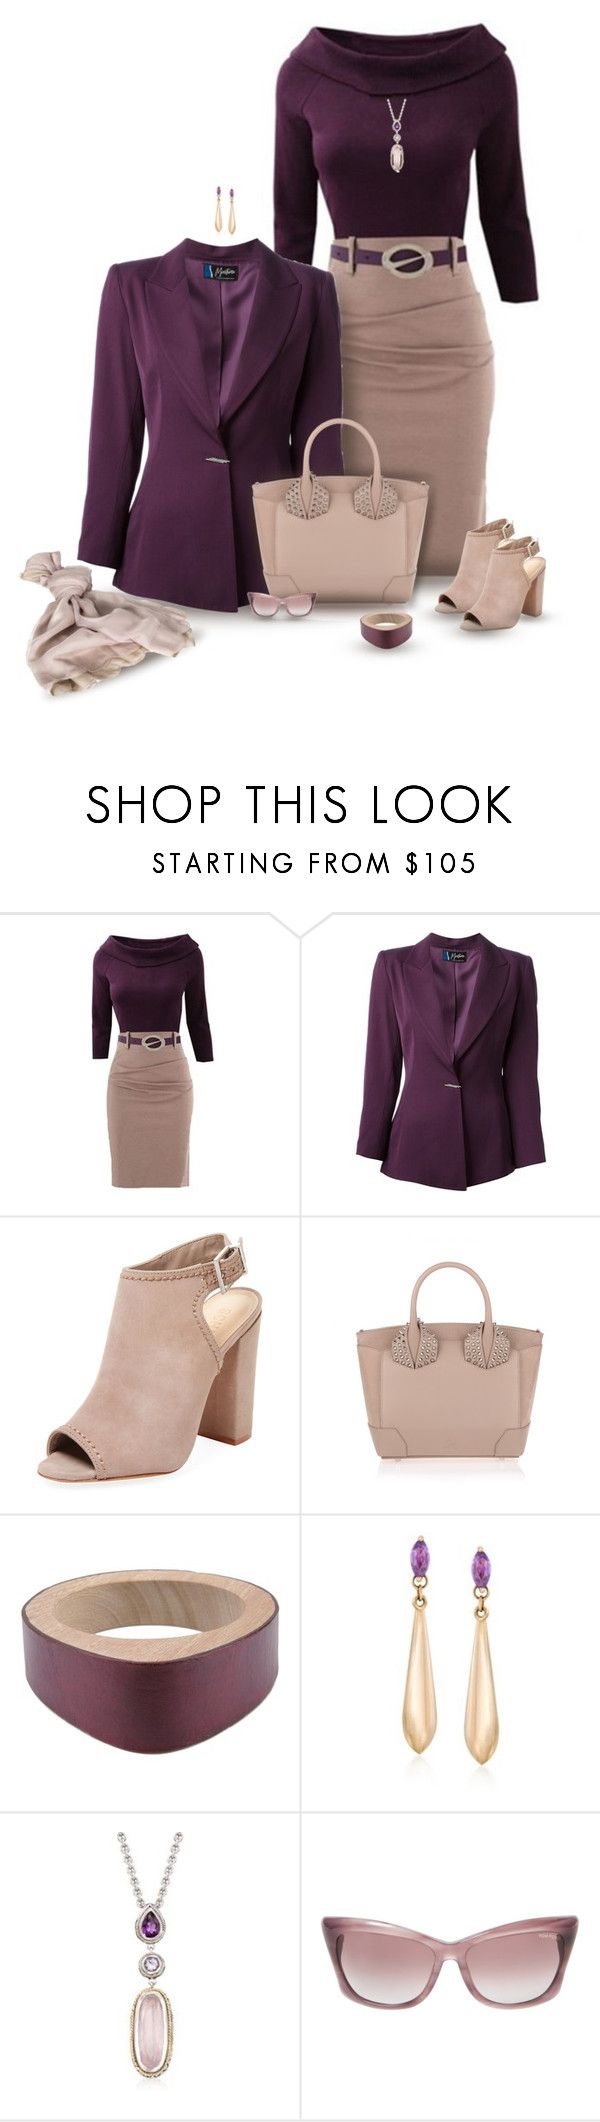 """set"" by vesper1977 ❤ liked on Polyvore featuring Claude Montana, Schutz, Christian Louboutin, Marni, Ross-Simons, Andréa Candela, Tom Ford and Valentino"